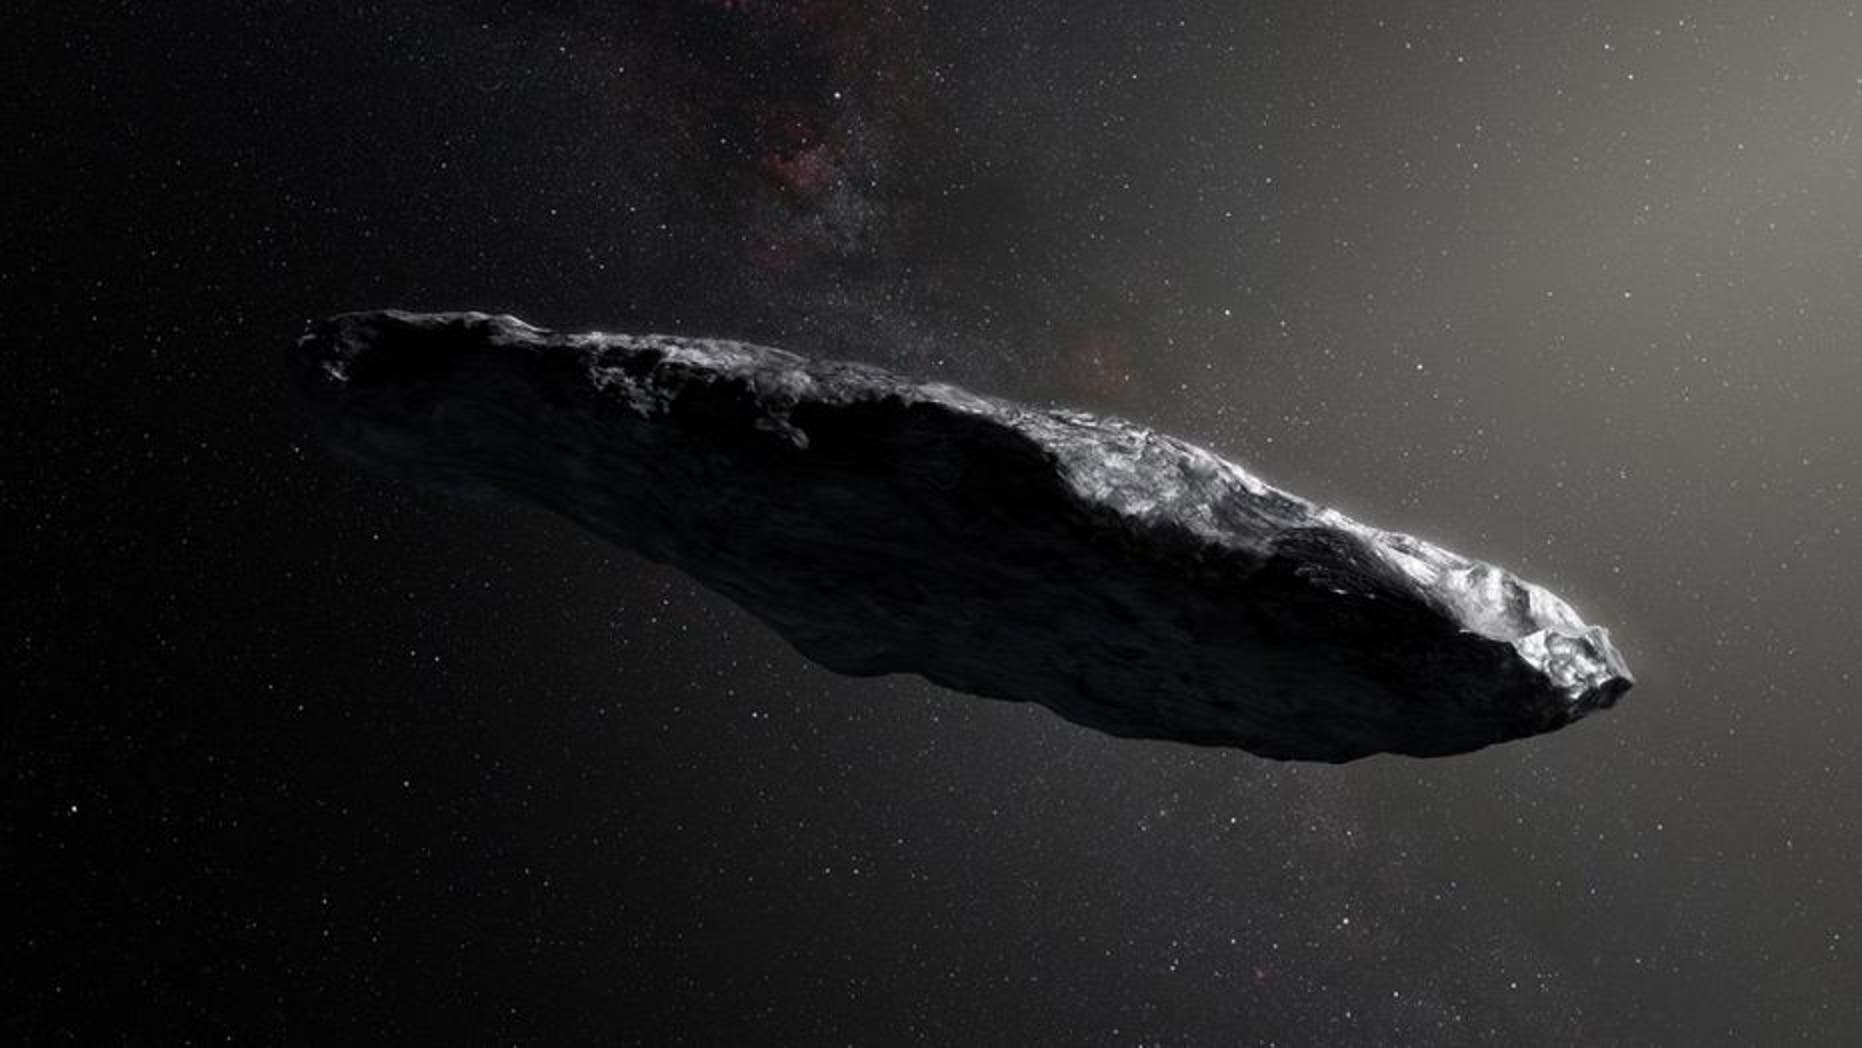 Cigar-Shaped Object May Have Been Alien Spacecraft, Researchers Claim